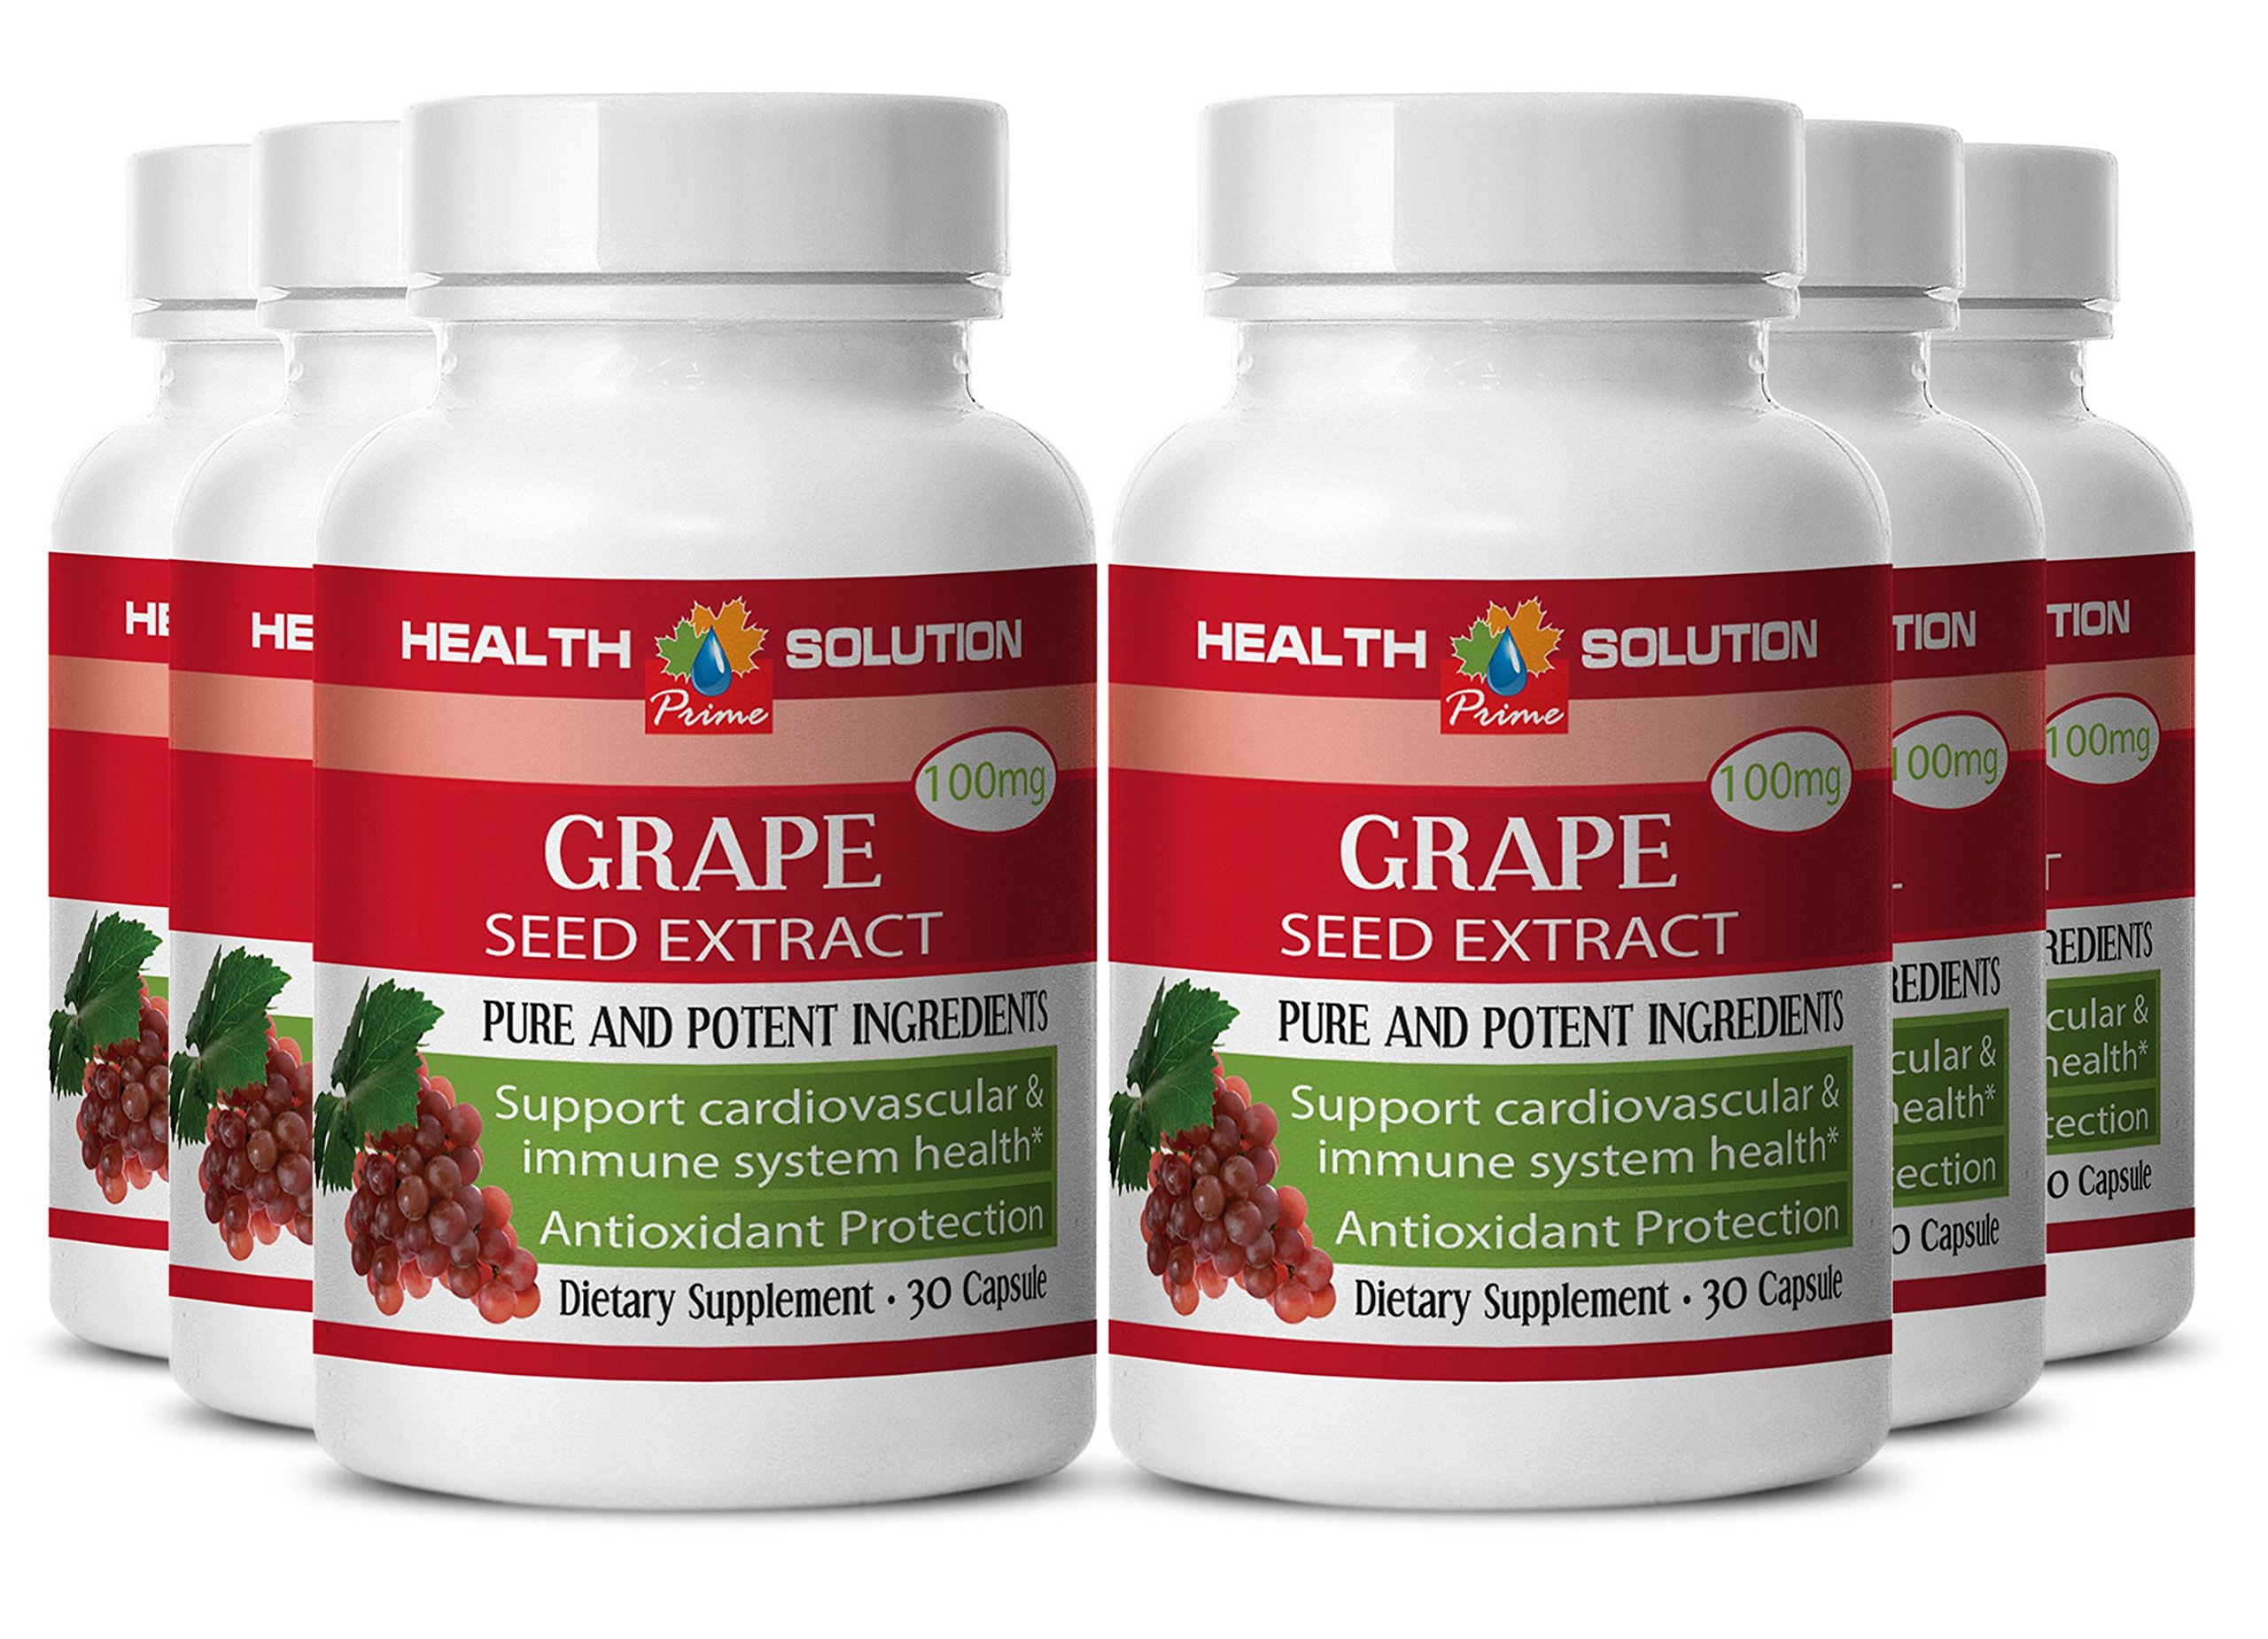 Pine bark grape seed green tea - GRAPE SEED EXTRACT- promote skin and eye health (6 bottles)